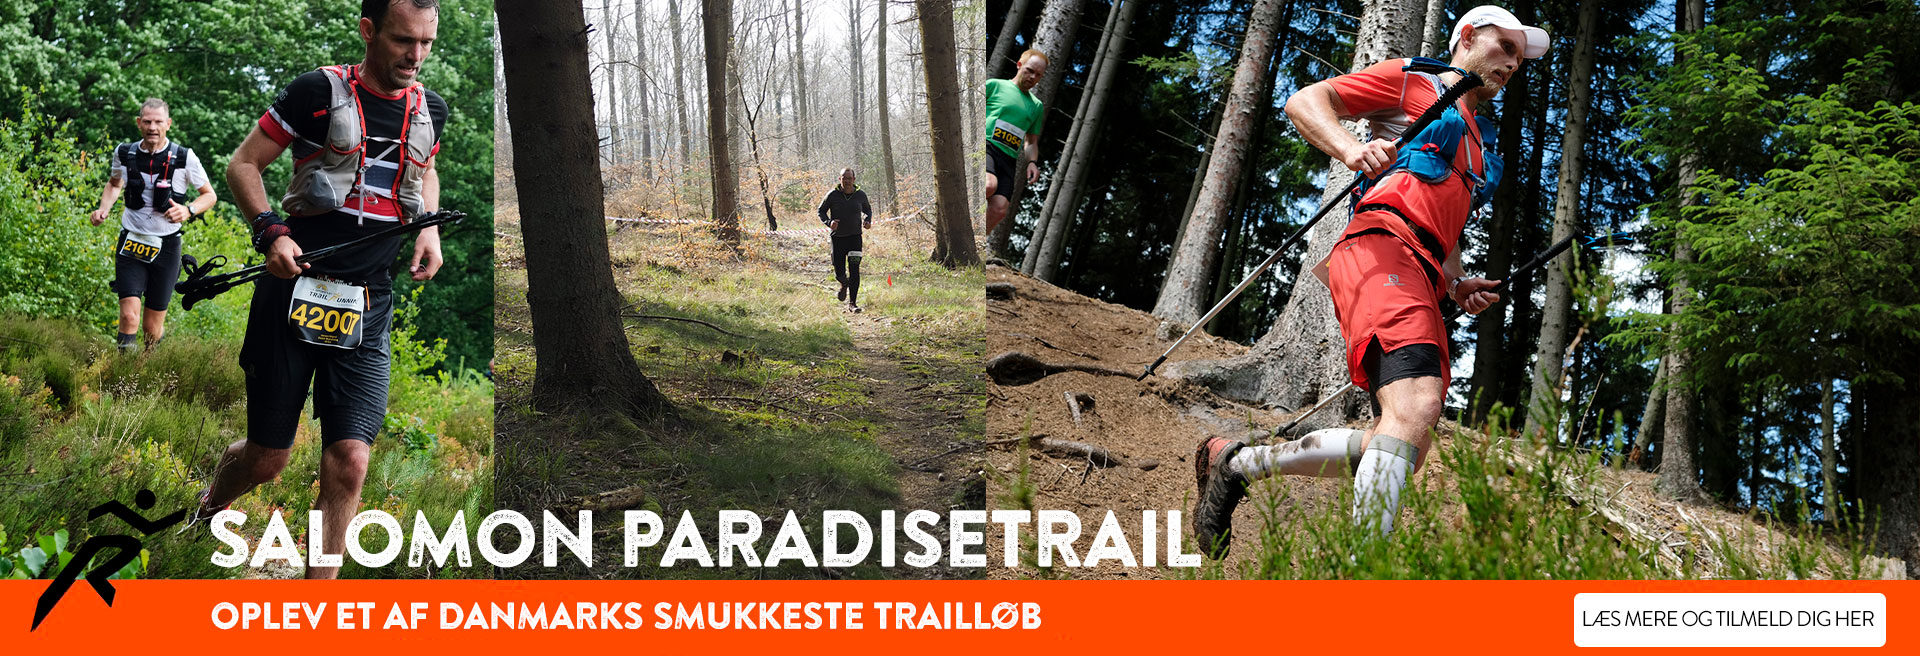 Salomon Paradise Trail